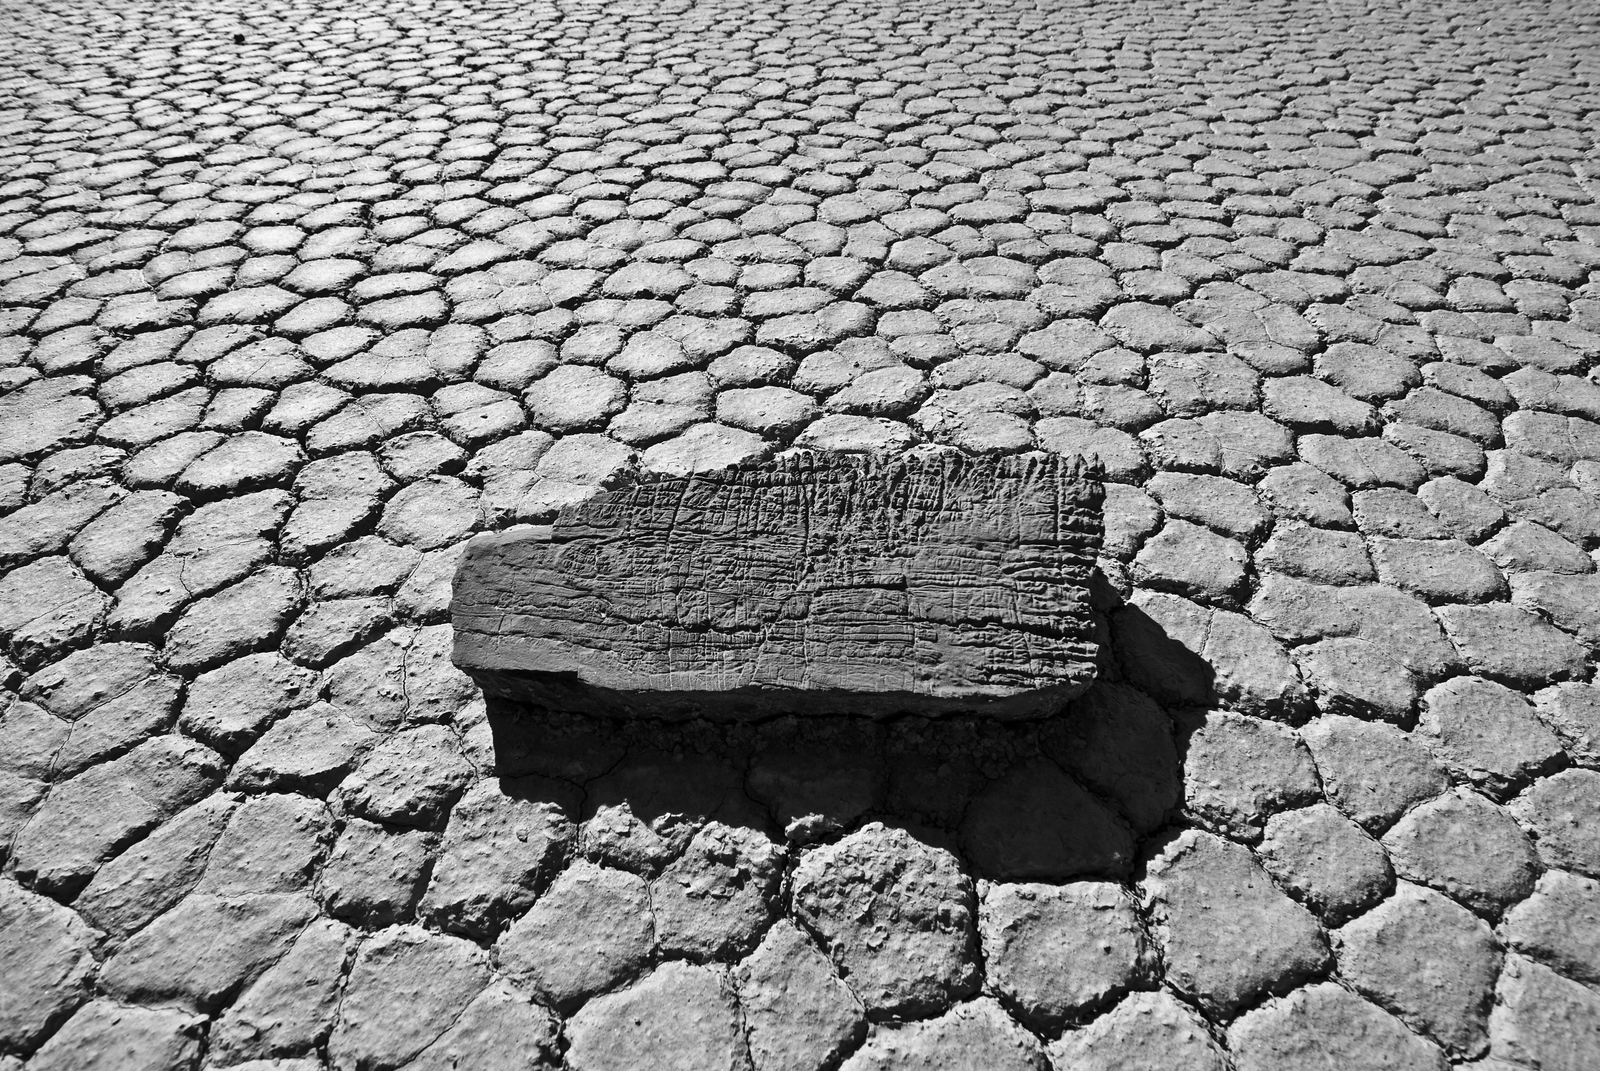 """<span id=""""title"""">Scratches</span> <em>Racetrack Playa</em> I found this flat rock incredibly compelling - I've never seen rocks with such intricate scratch-like patterns on them before. You can also get a good idea of what the mud flats were like in this photo."""